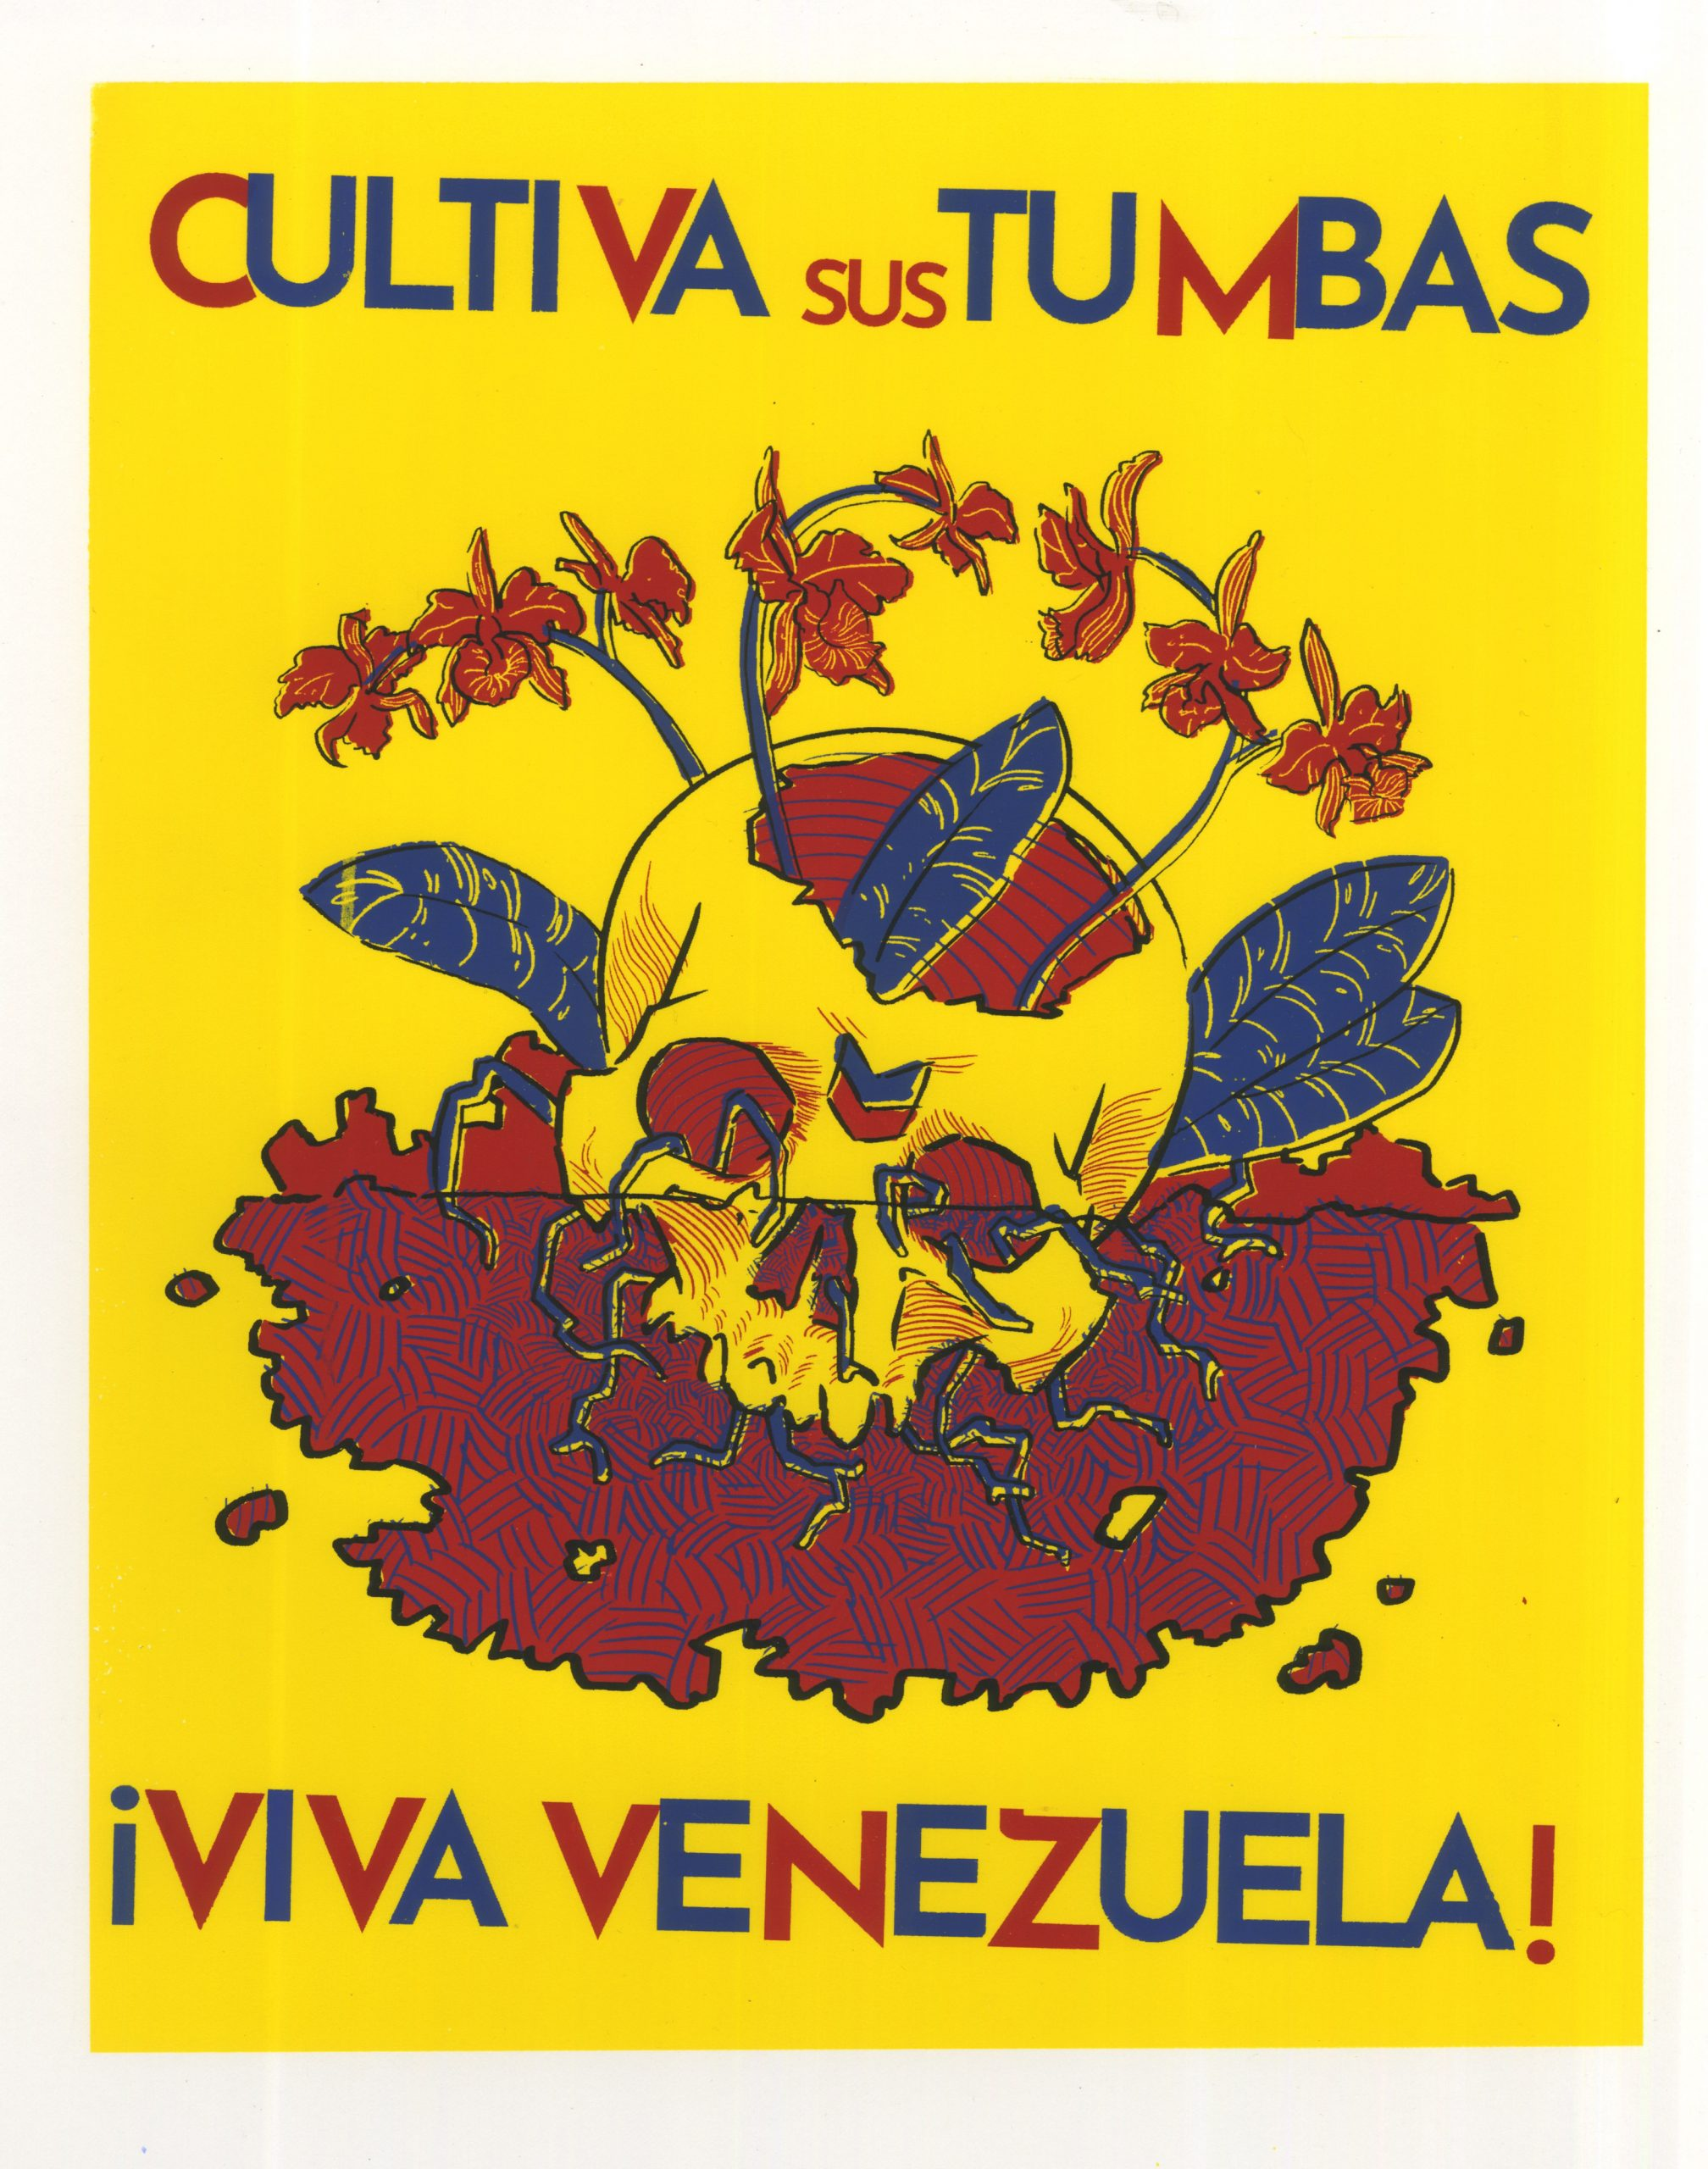 Poster in support of Venezuela. Skull with the Chevron logo is depicted with the Venezualan national flower growing out of it.